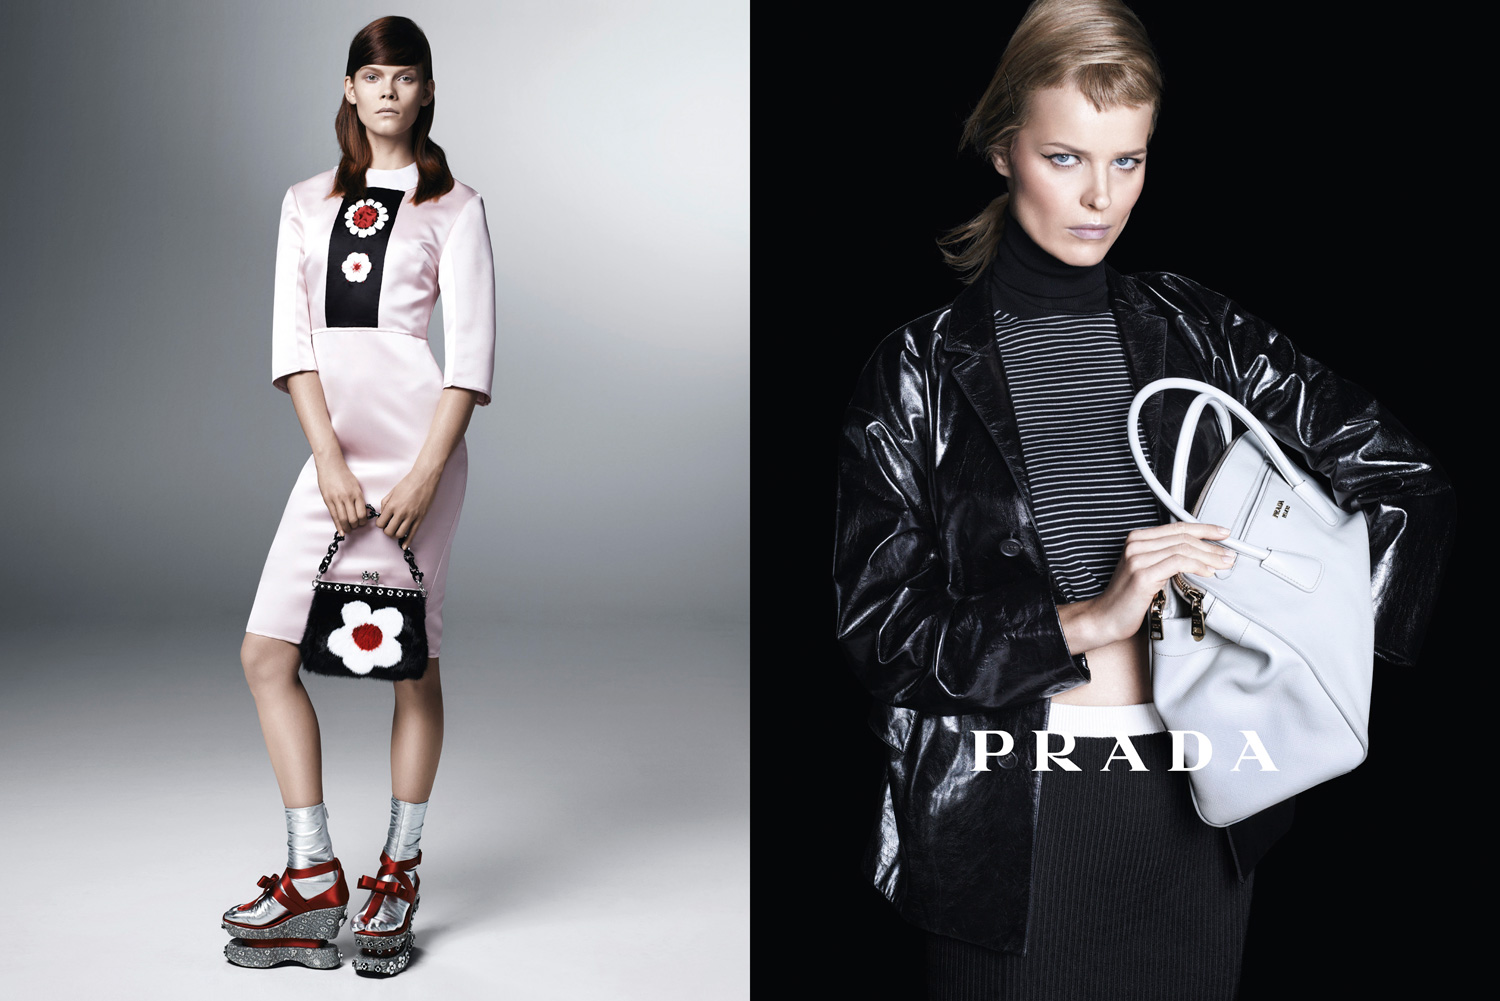 prada-women-spring-summer-2013-11